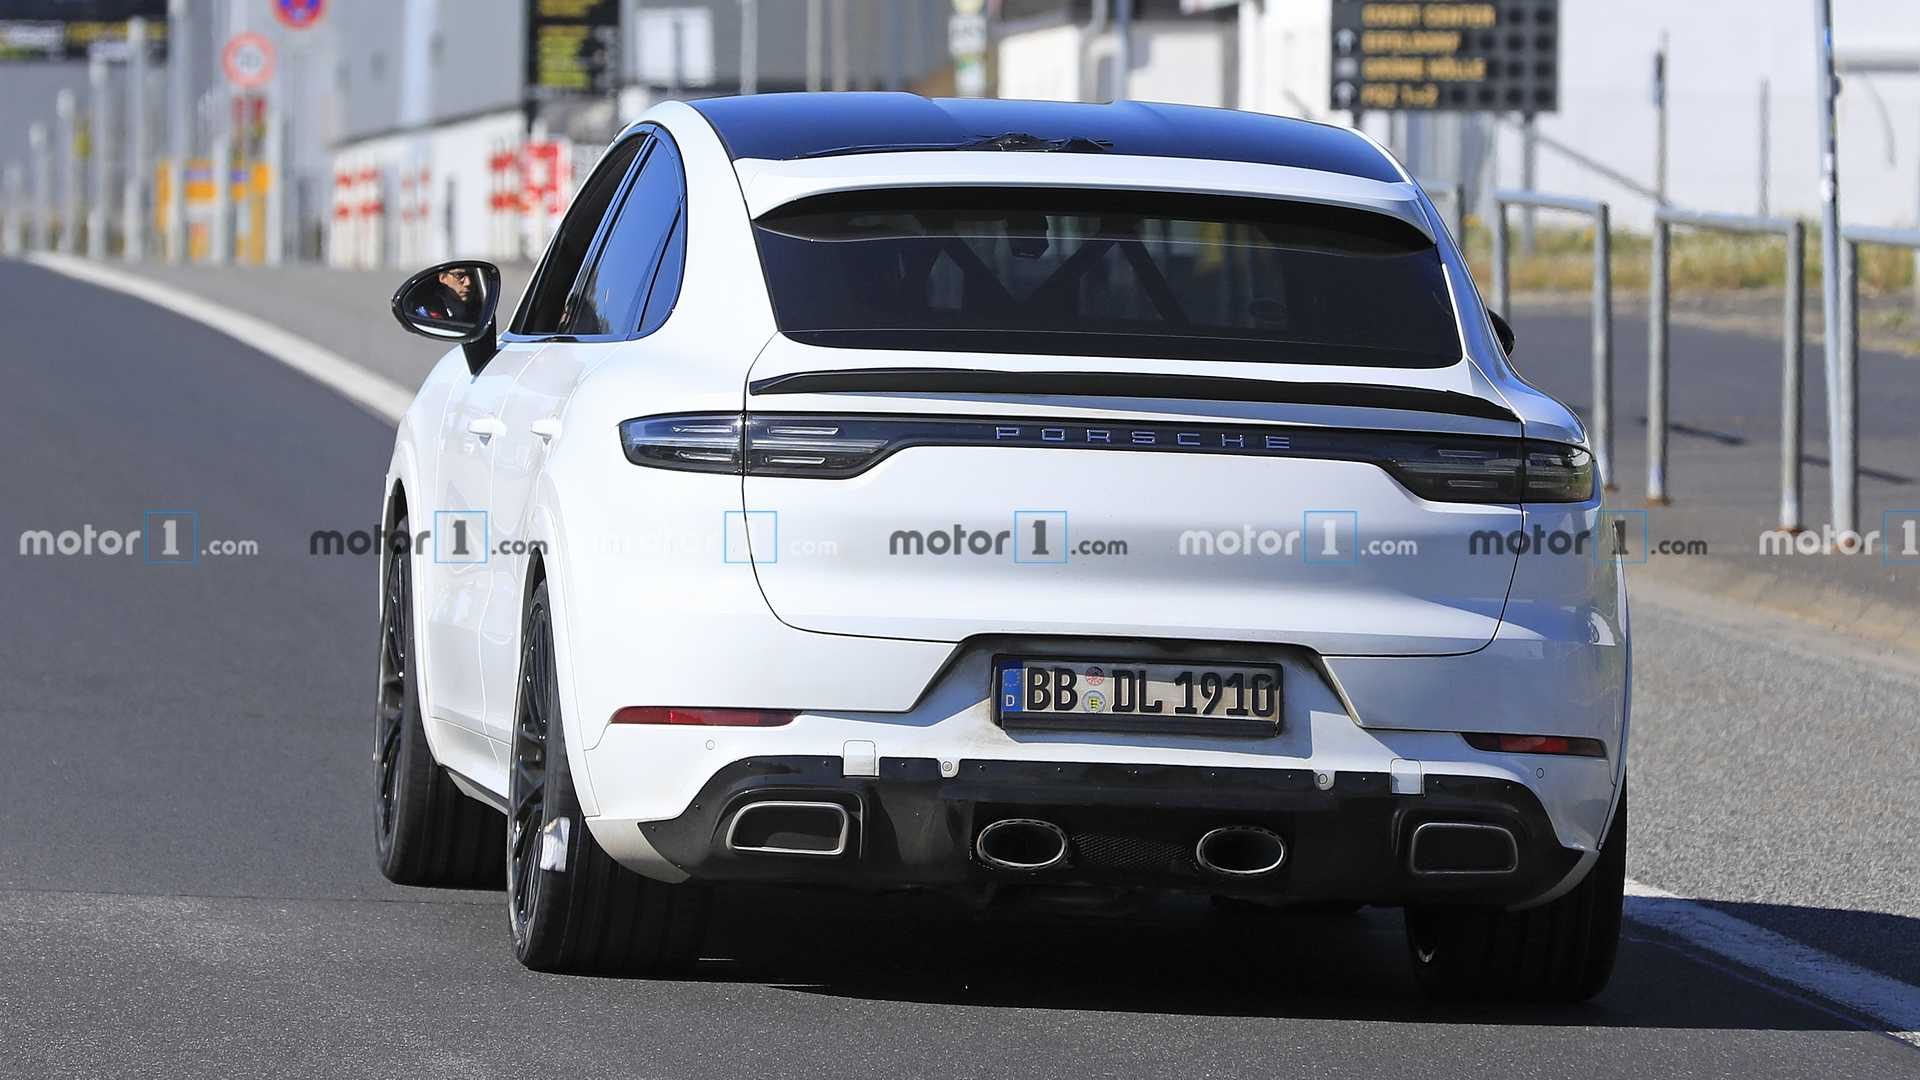 Porsche Cayenne Coupe Gts Spied Nurburgring Record Attempt Planned